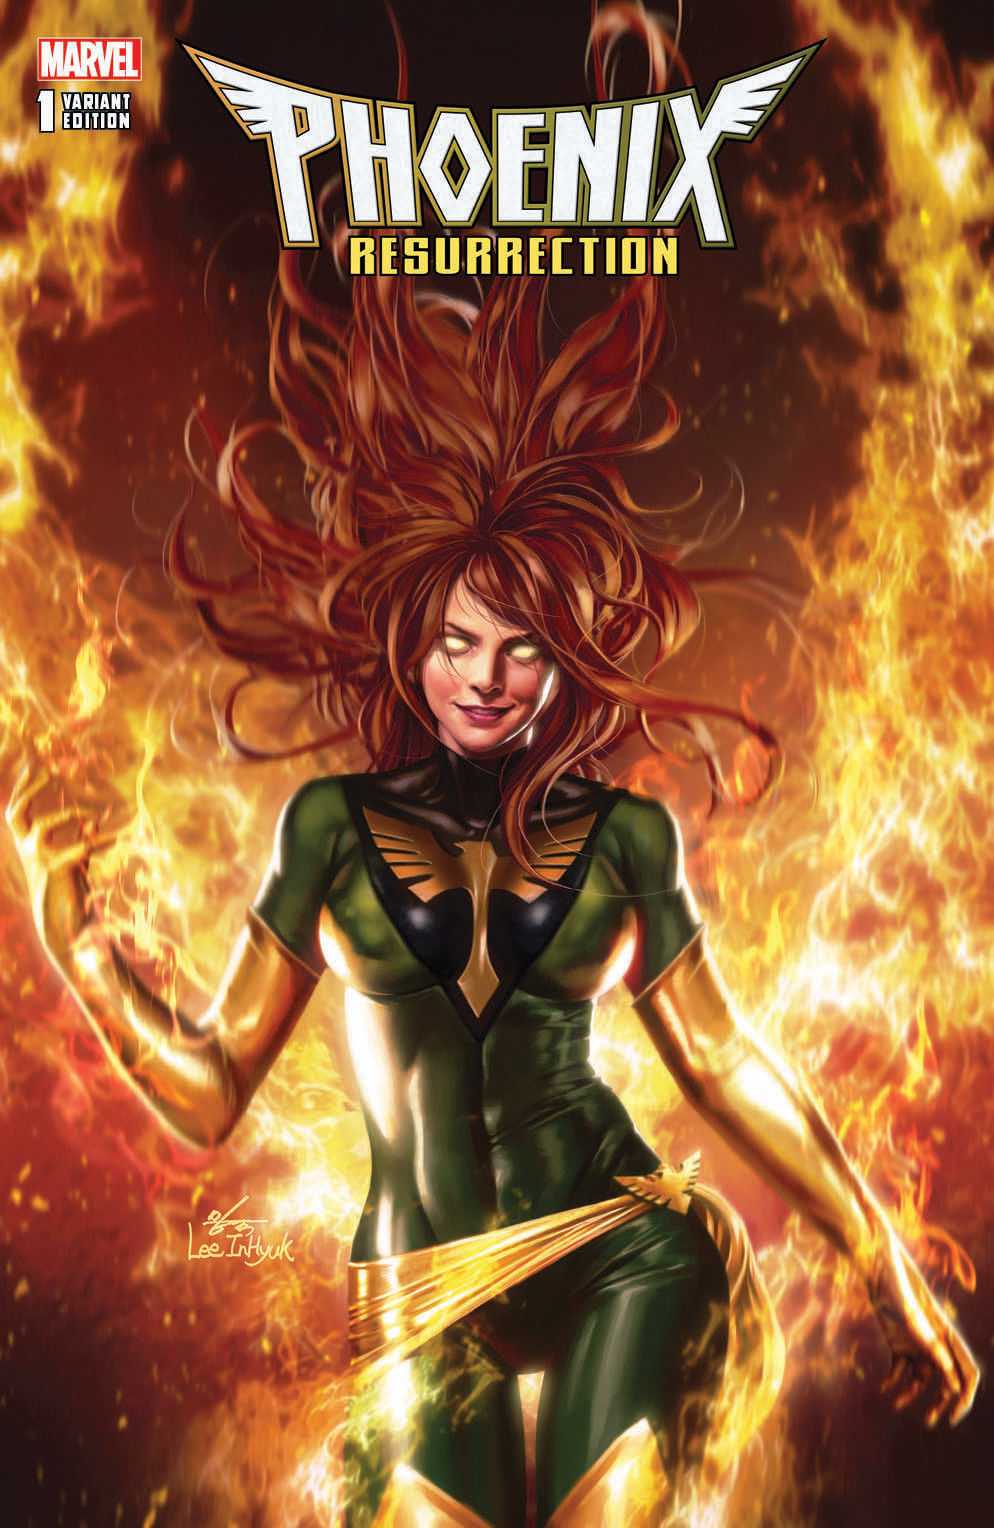 Phoenix Resurrection: The Return of Jean Grey #1 InHyuk Lee Variant